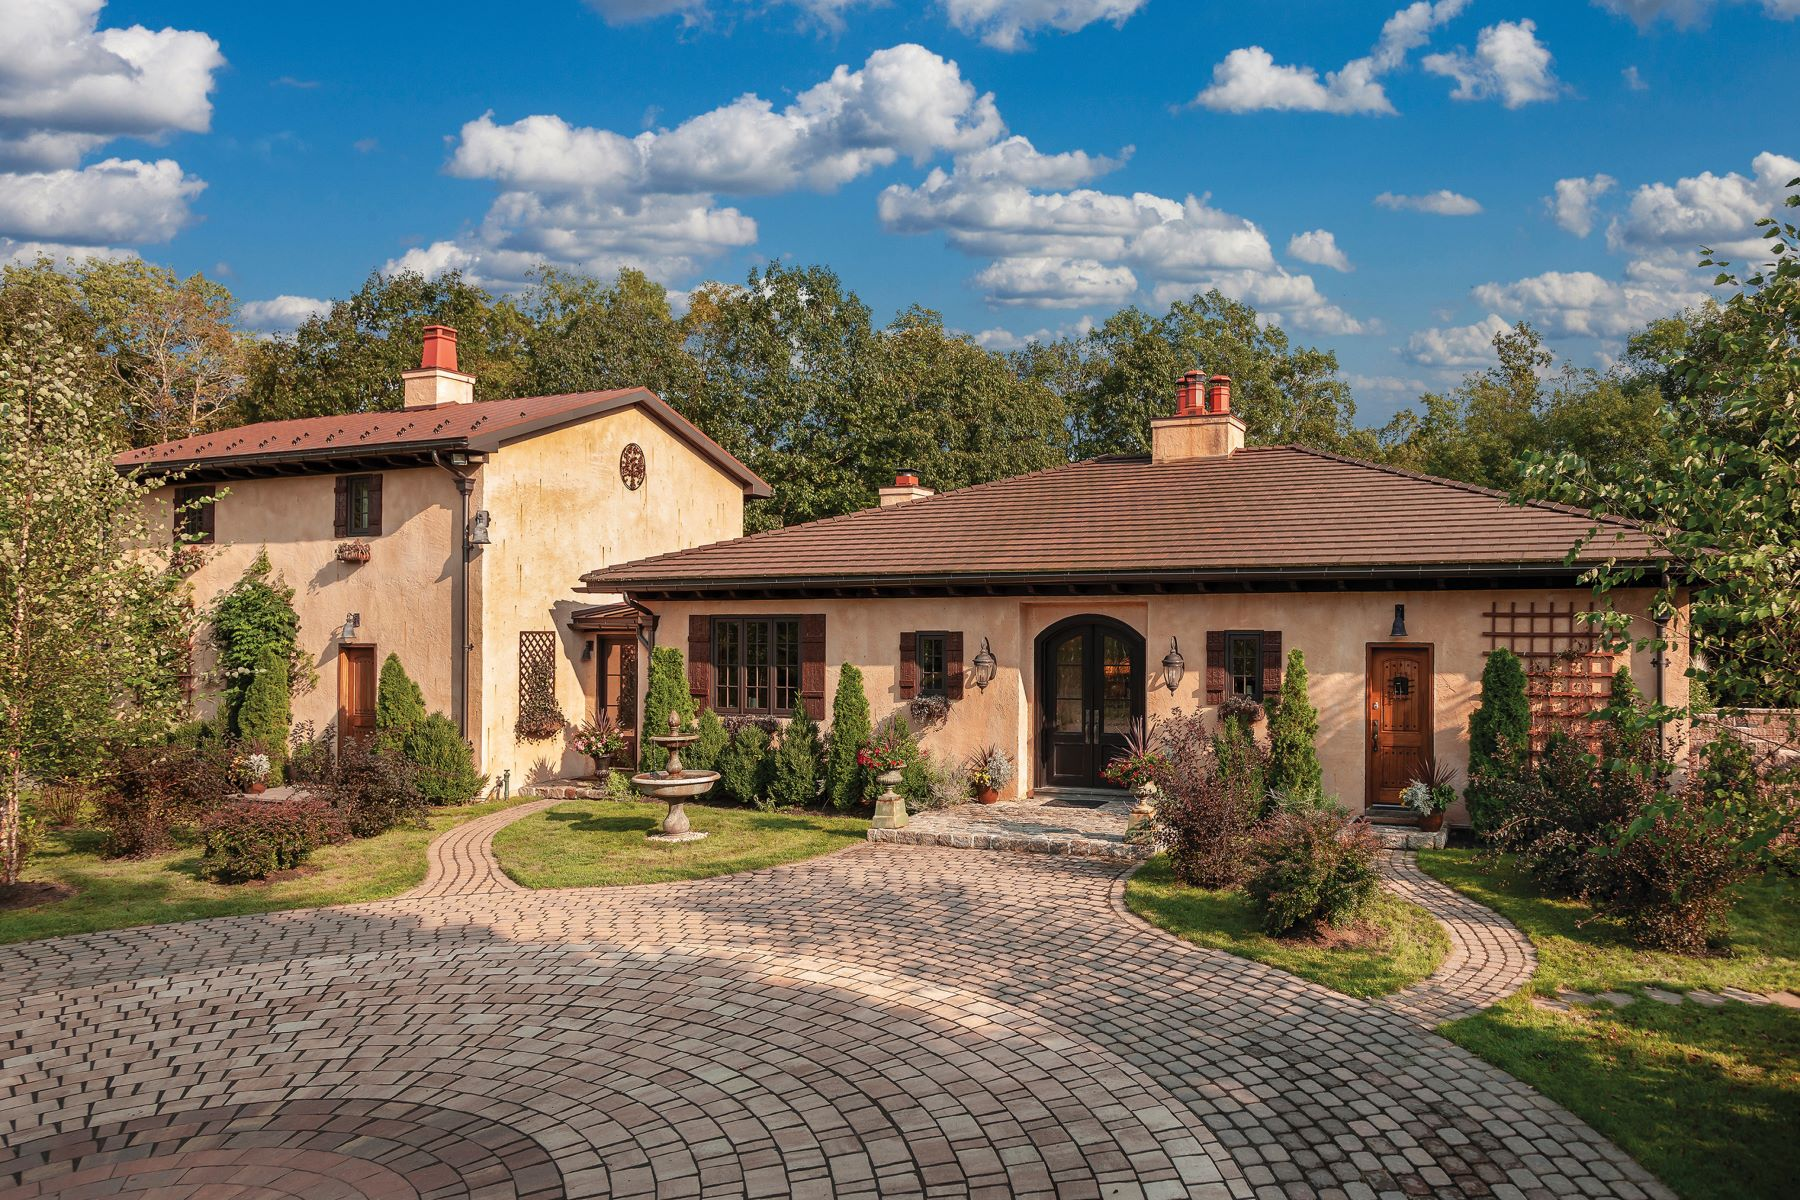 Single Family Homes for Sale at Tuscan Masterpiece 465 CAFFERTY RD, Erwinna, Pennsylvania 18920 United States